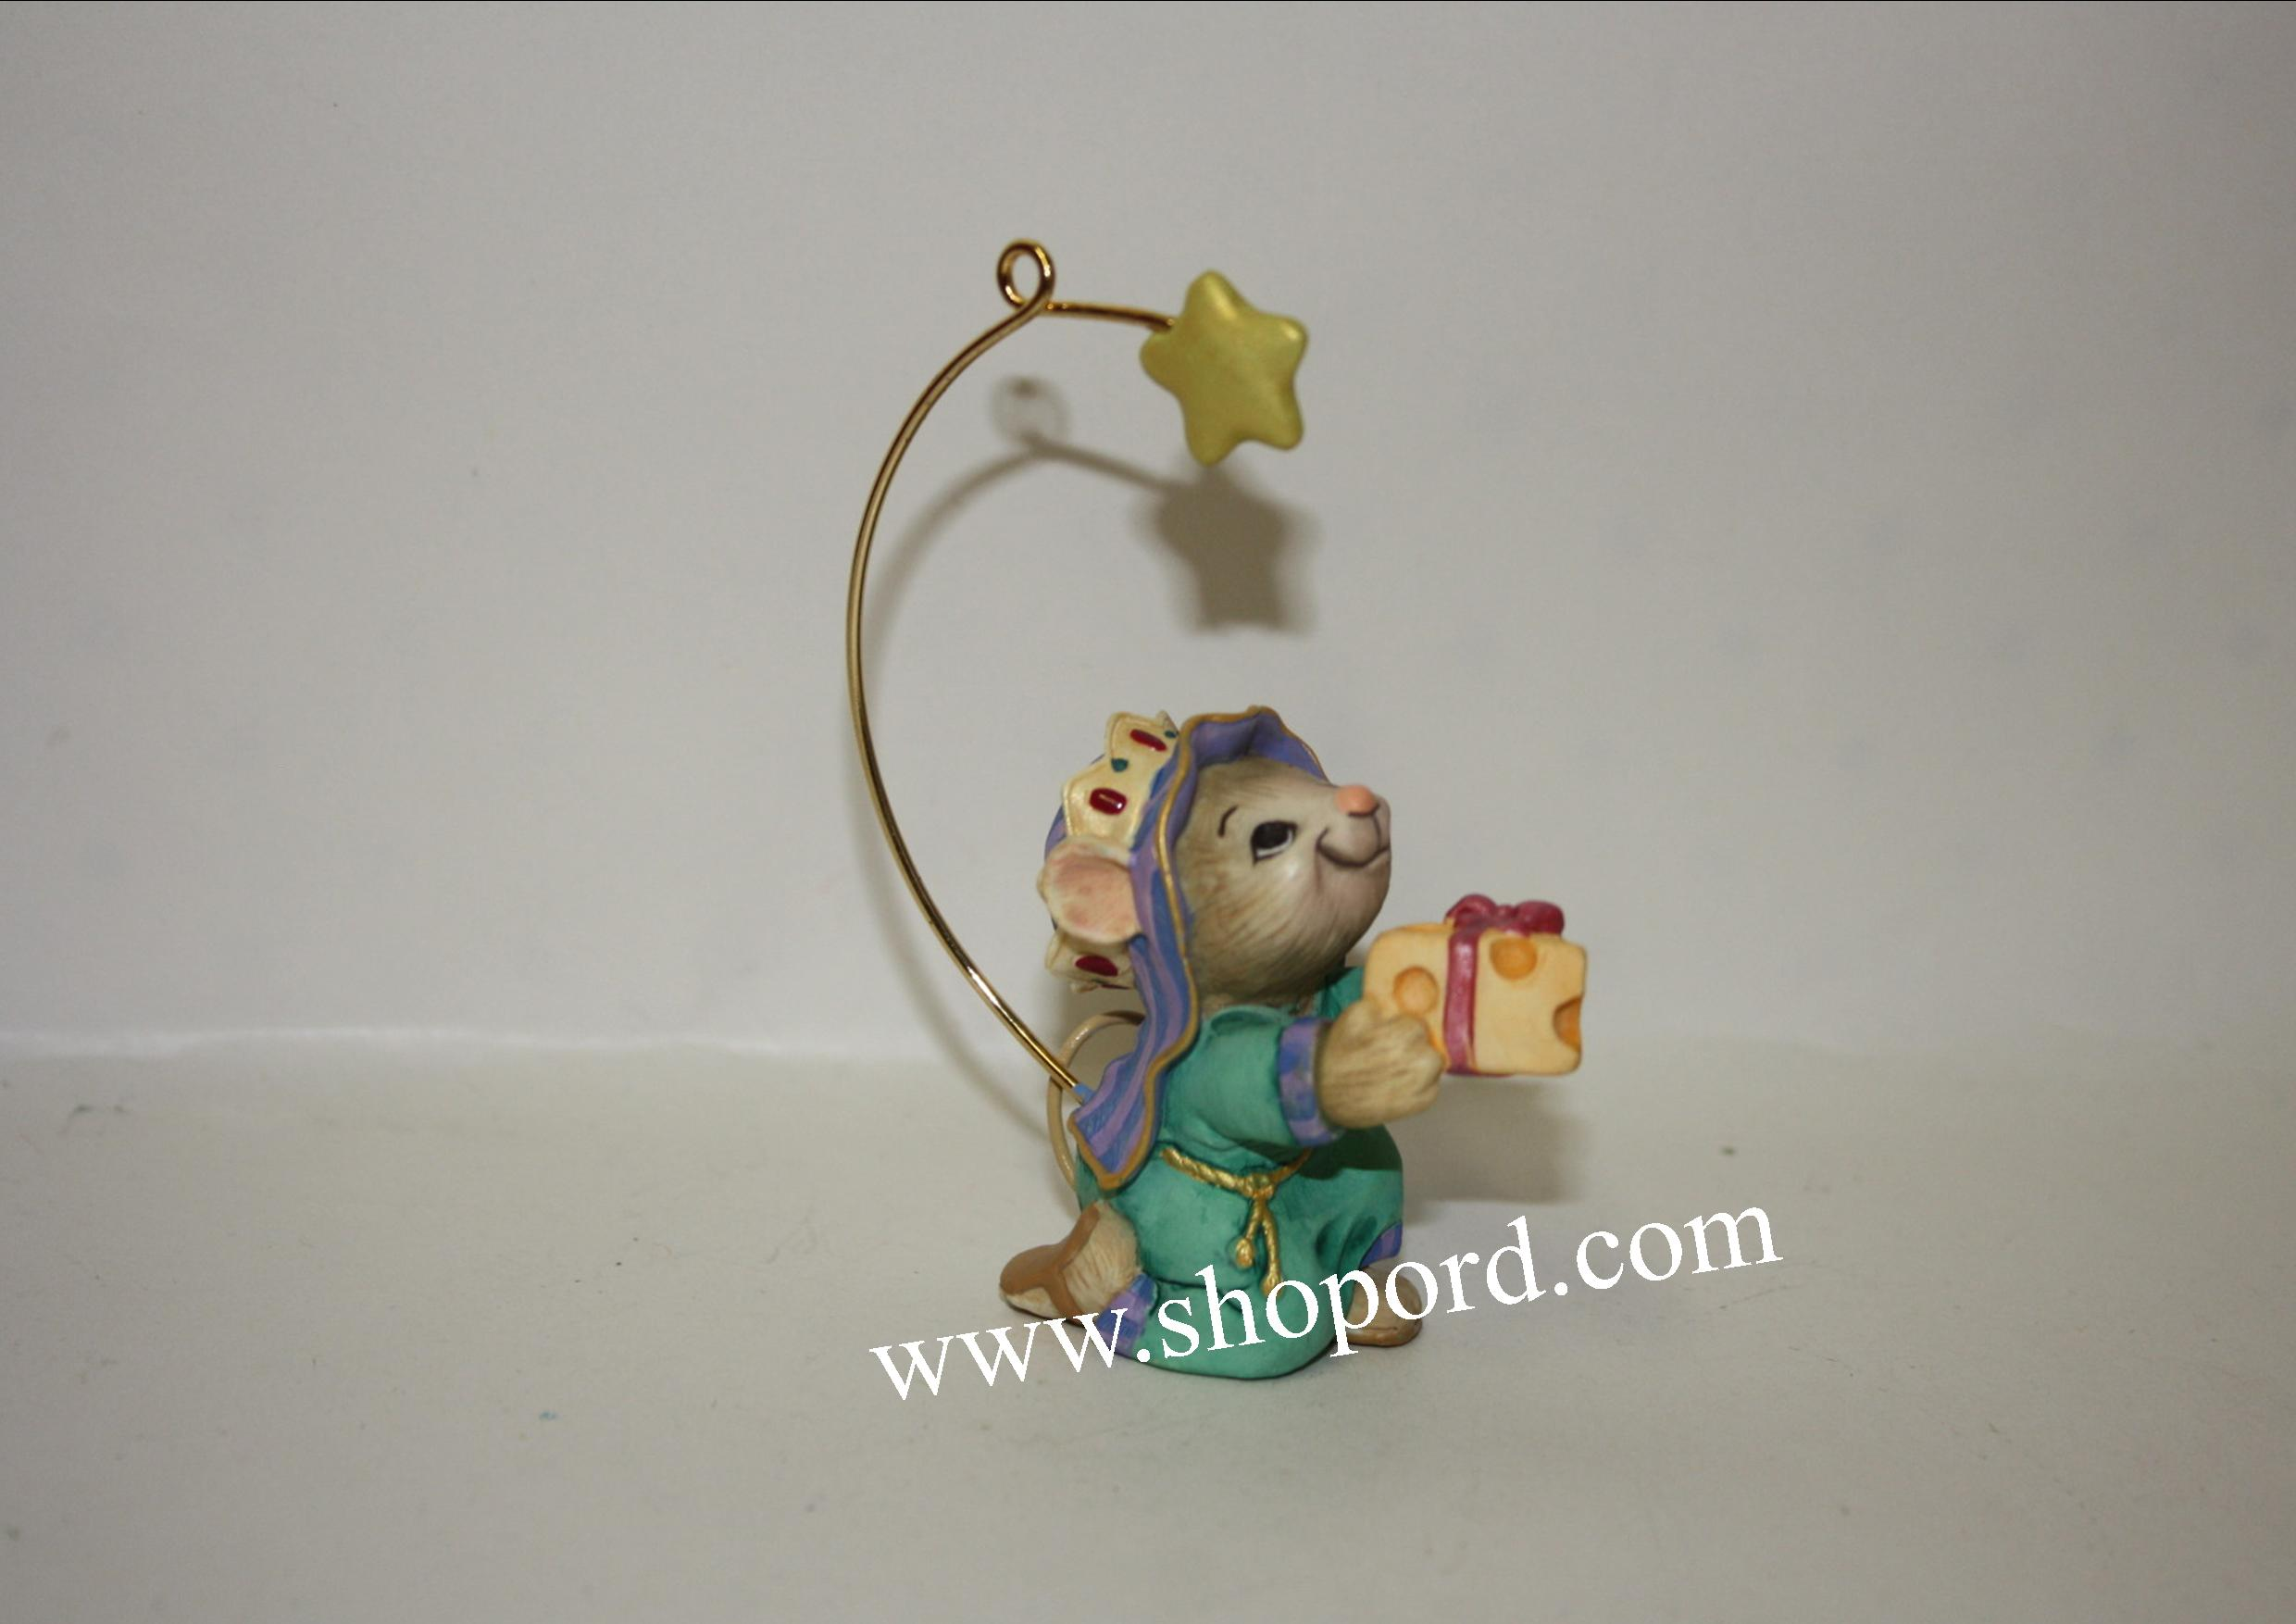 Hallmark 2001 A Wise Follower Ornament QX8202